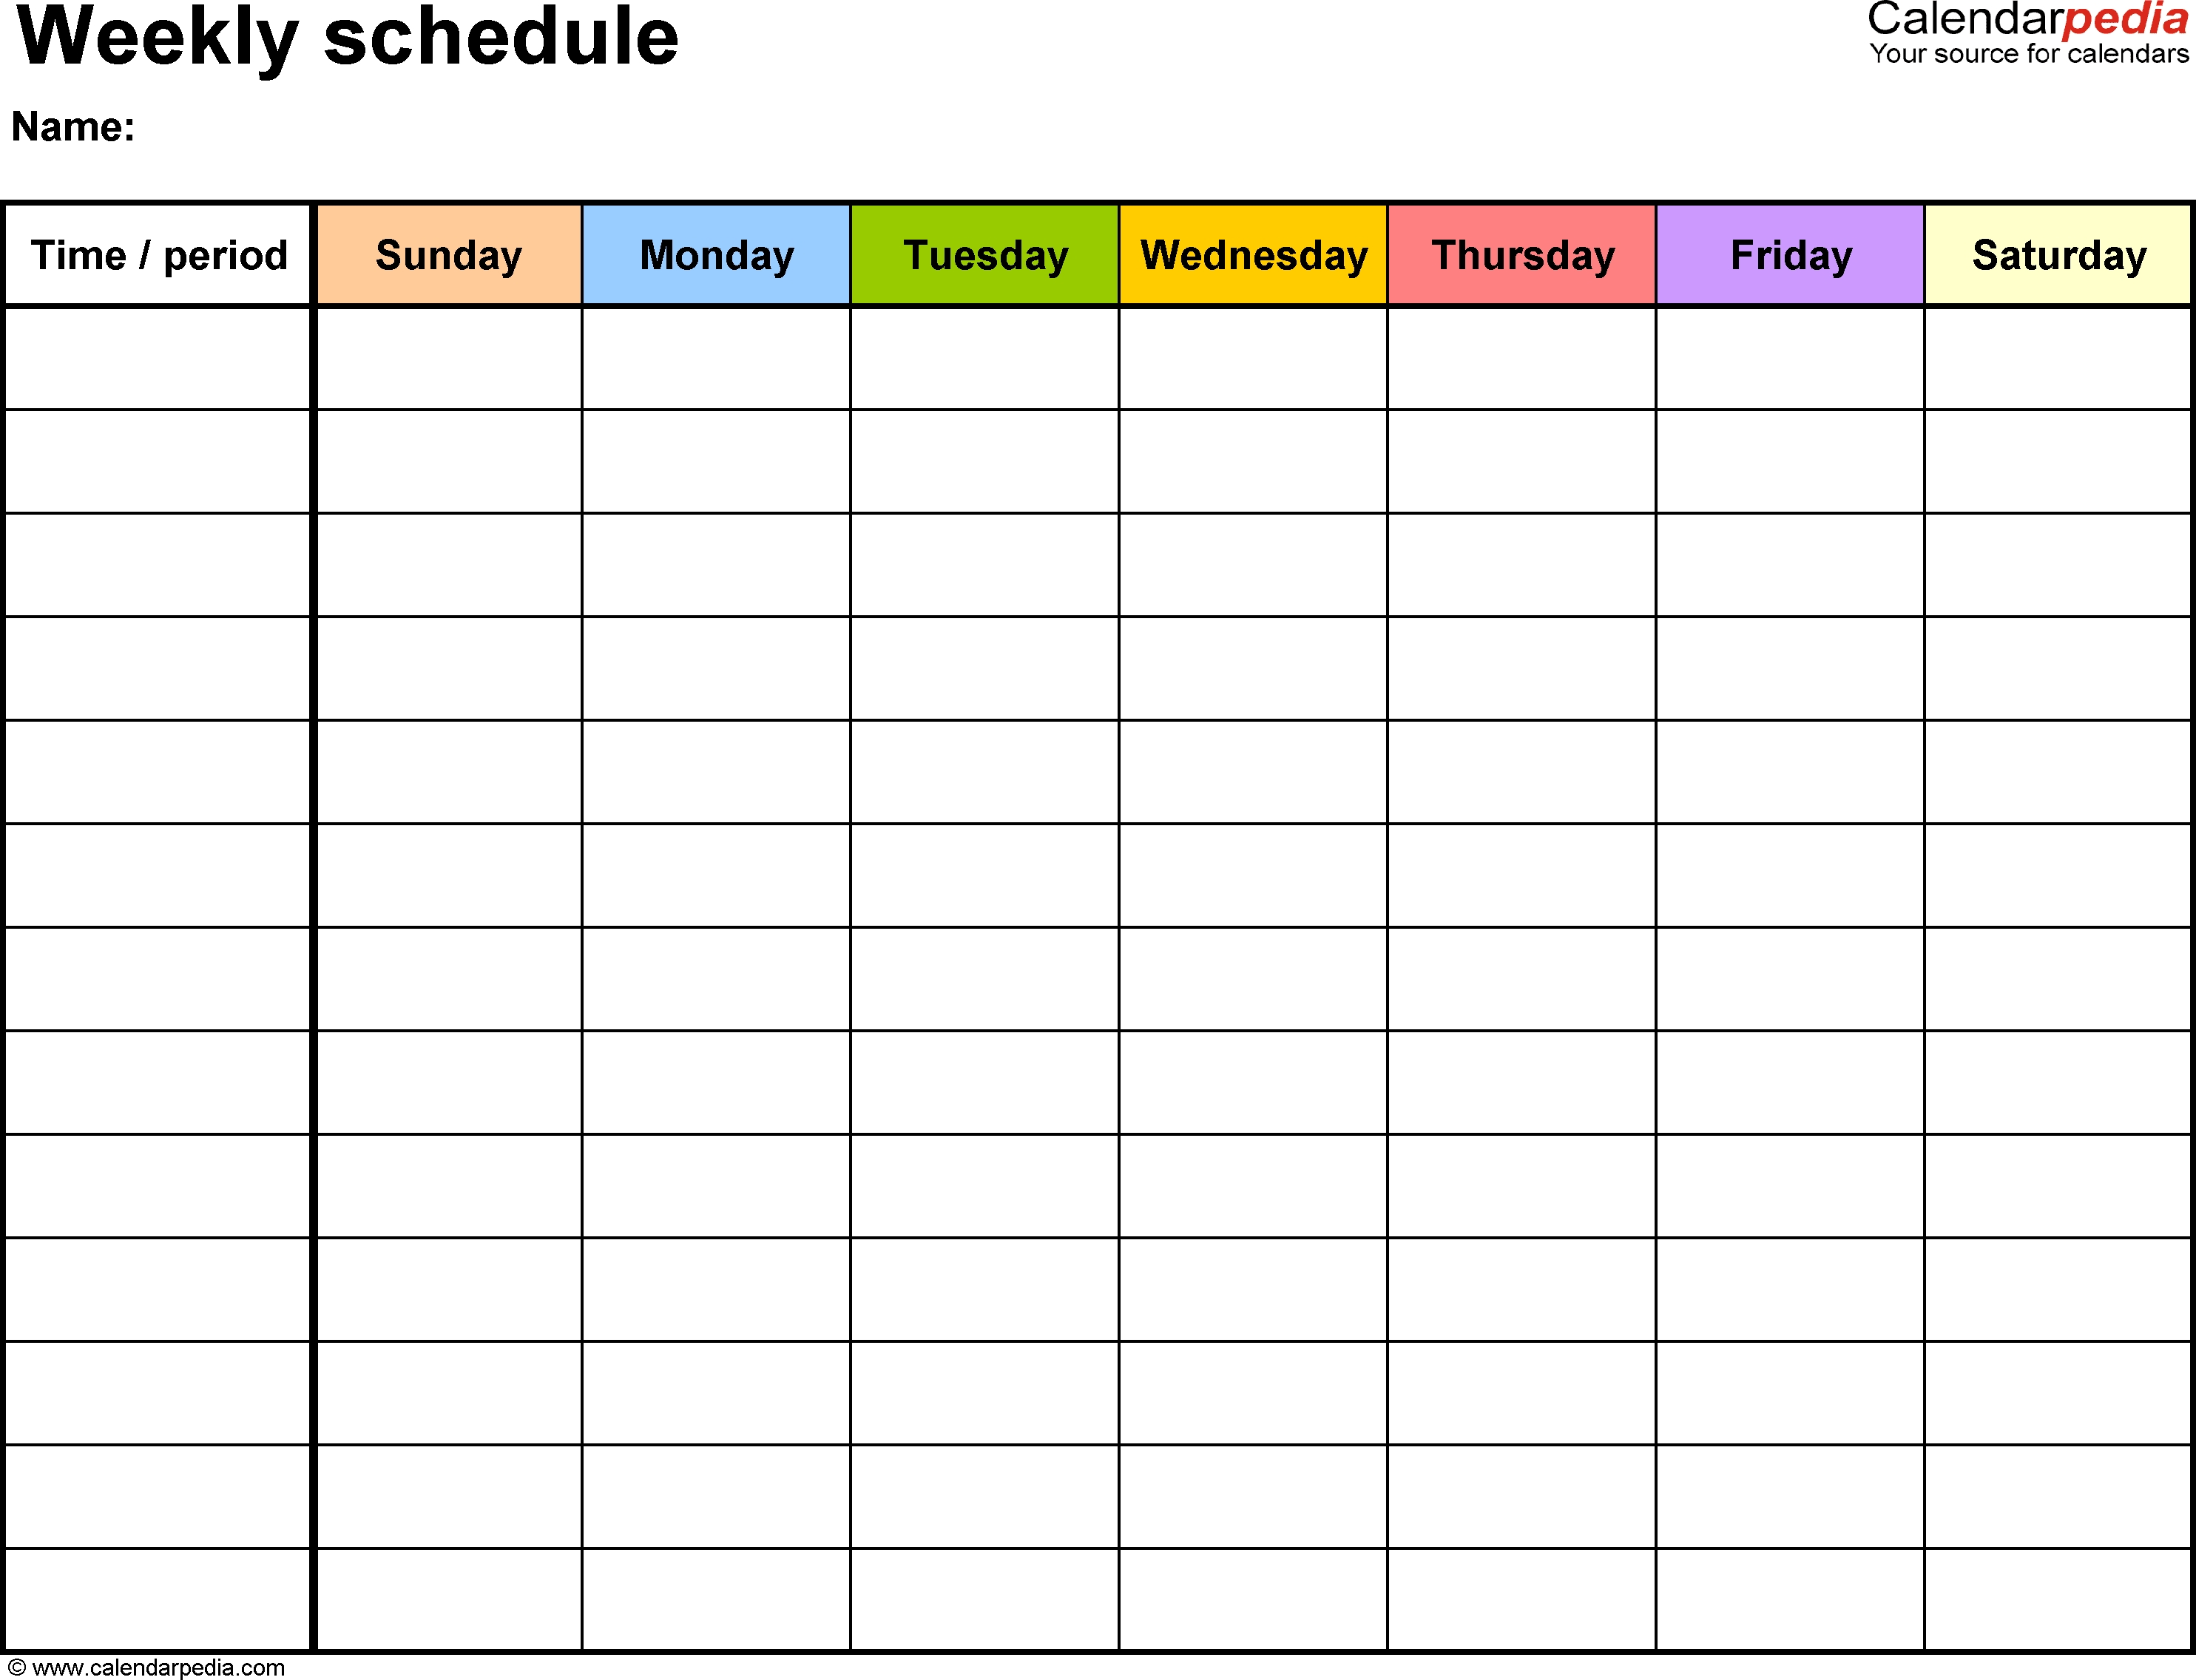 Free Weekly Schedule Templates For Pdf - 18 Templates for Pdf Free Monday - Friday Weekly Planner